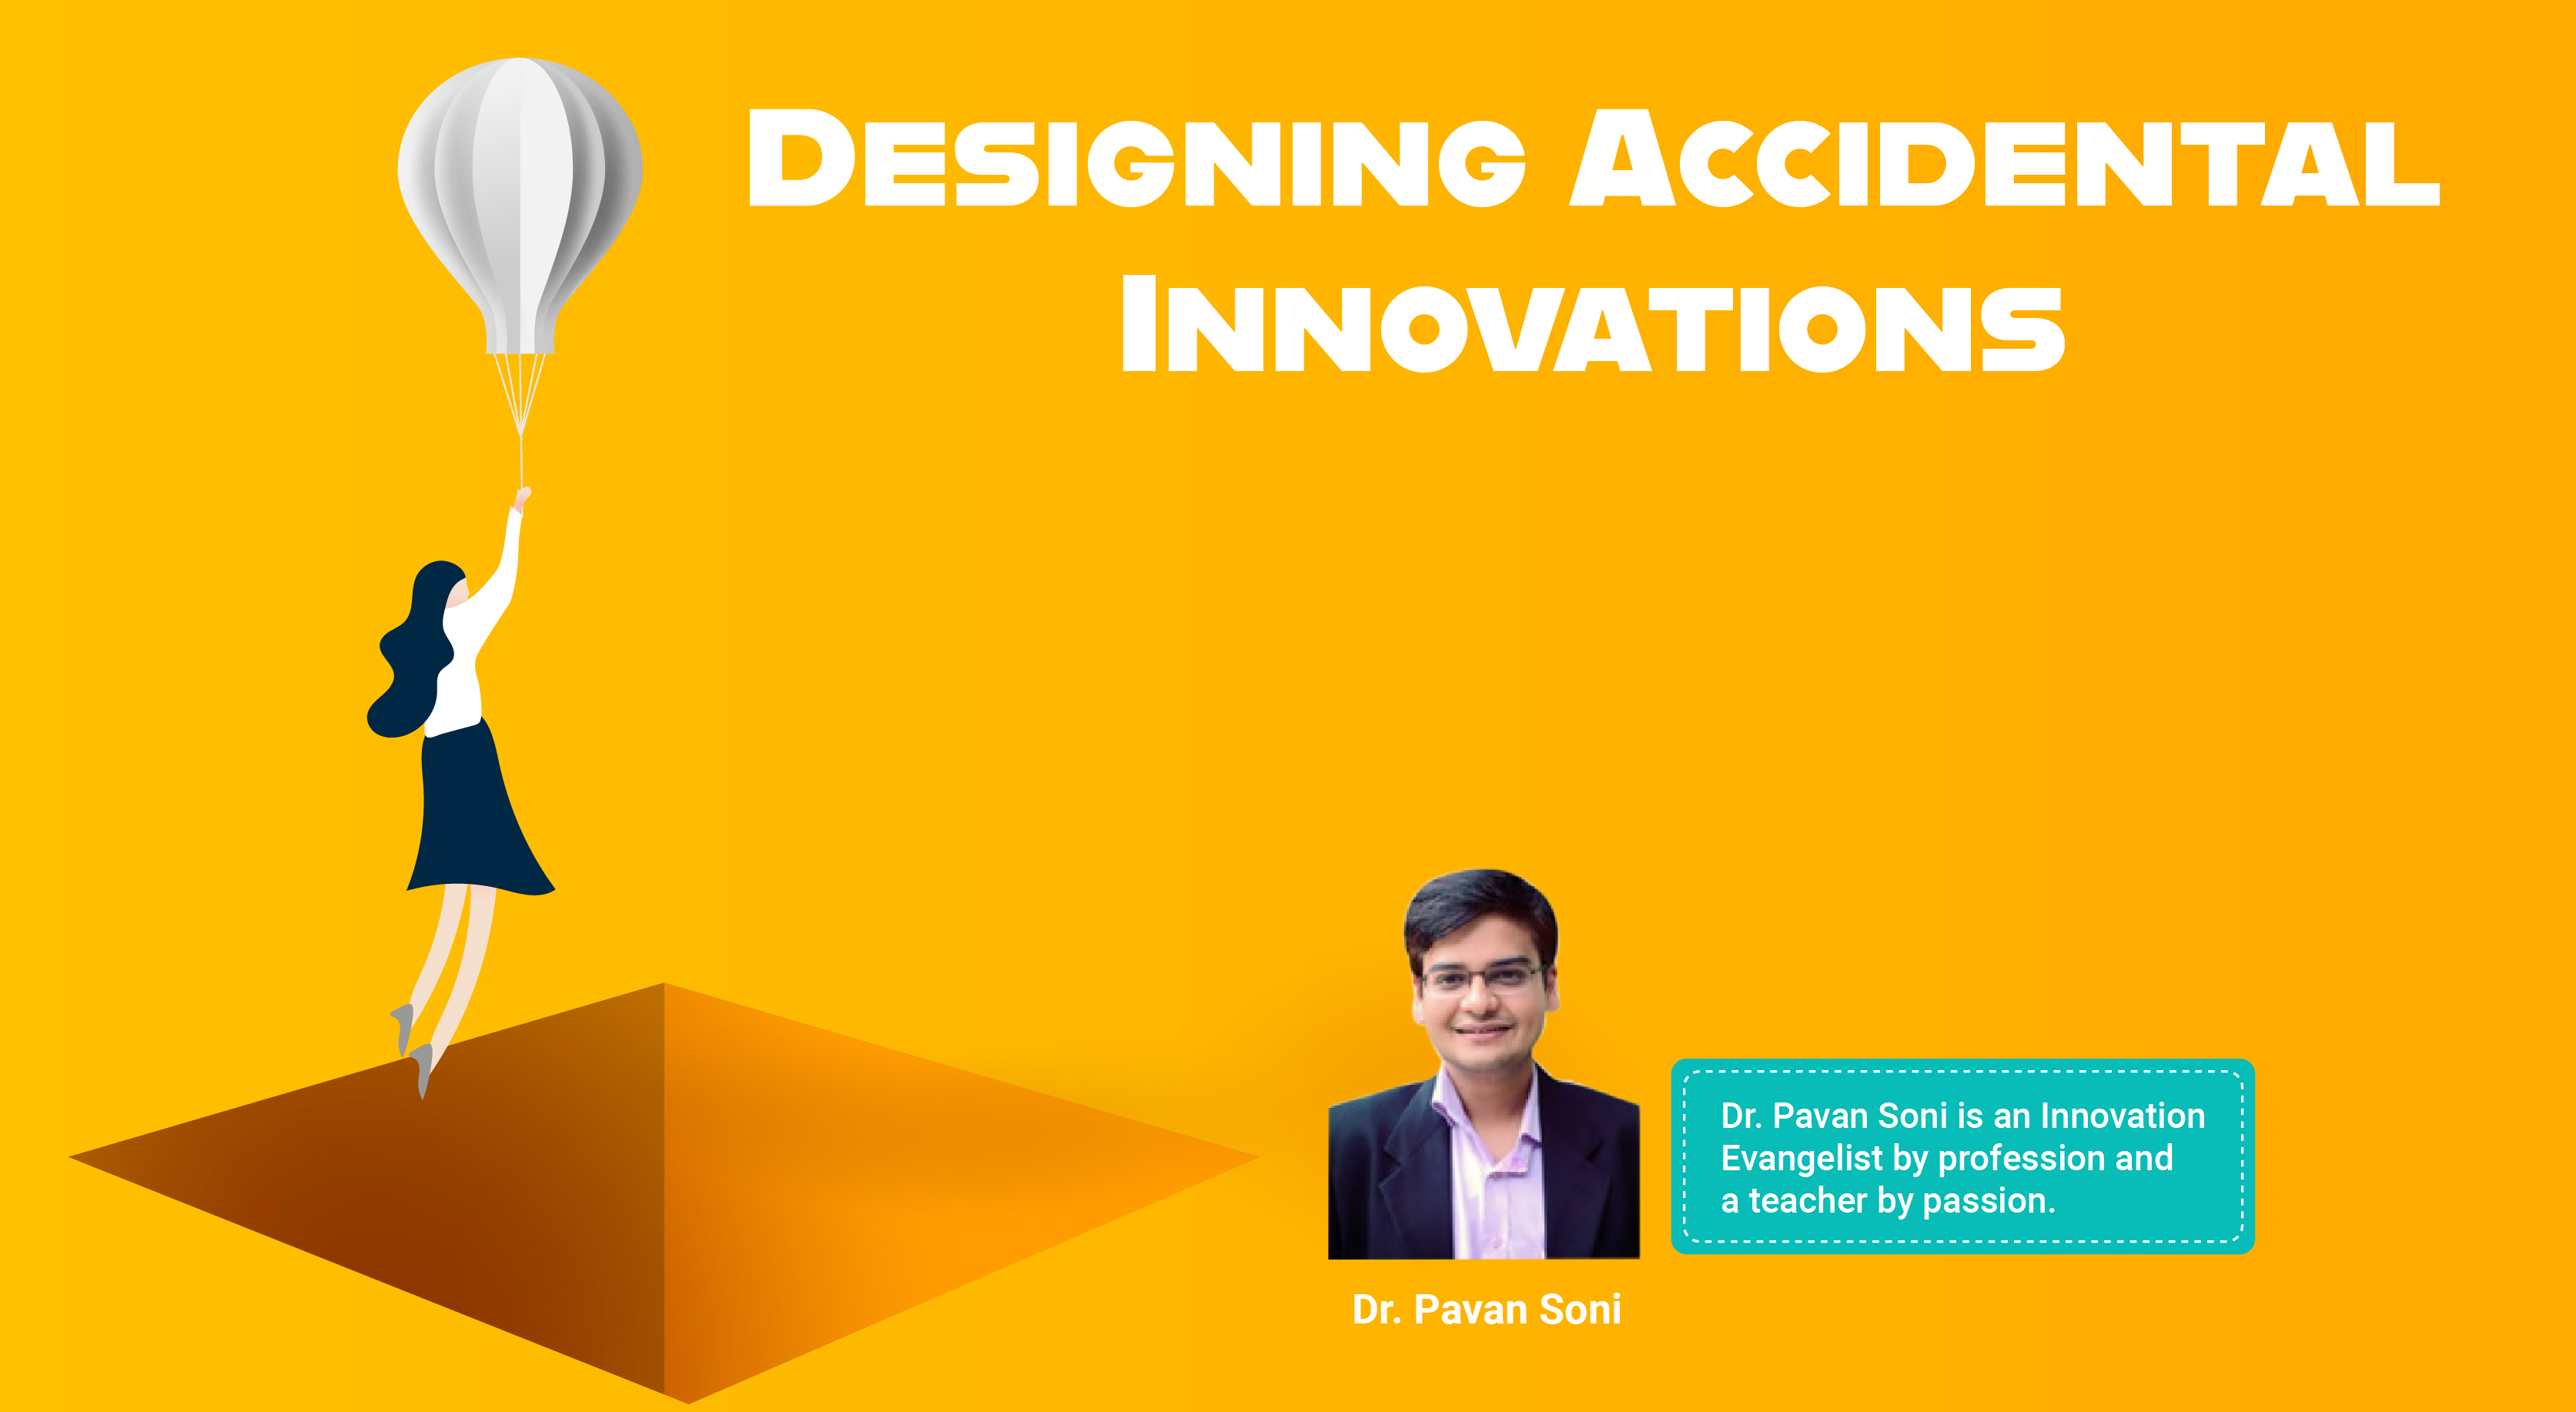 Designing Accidental Innovations